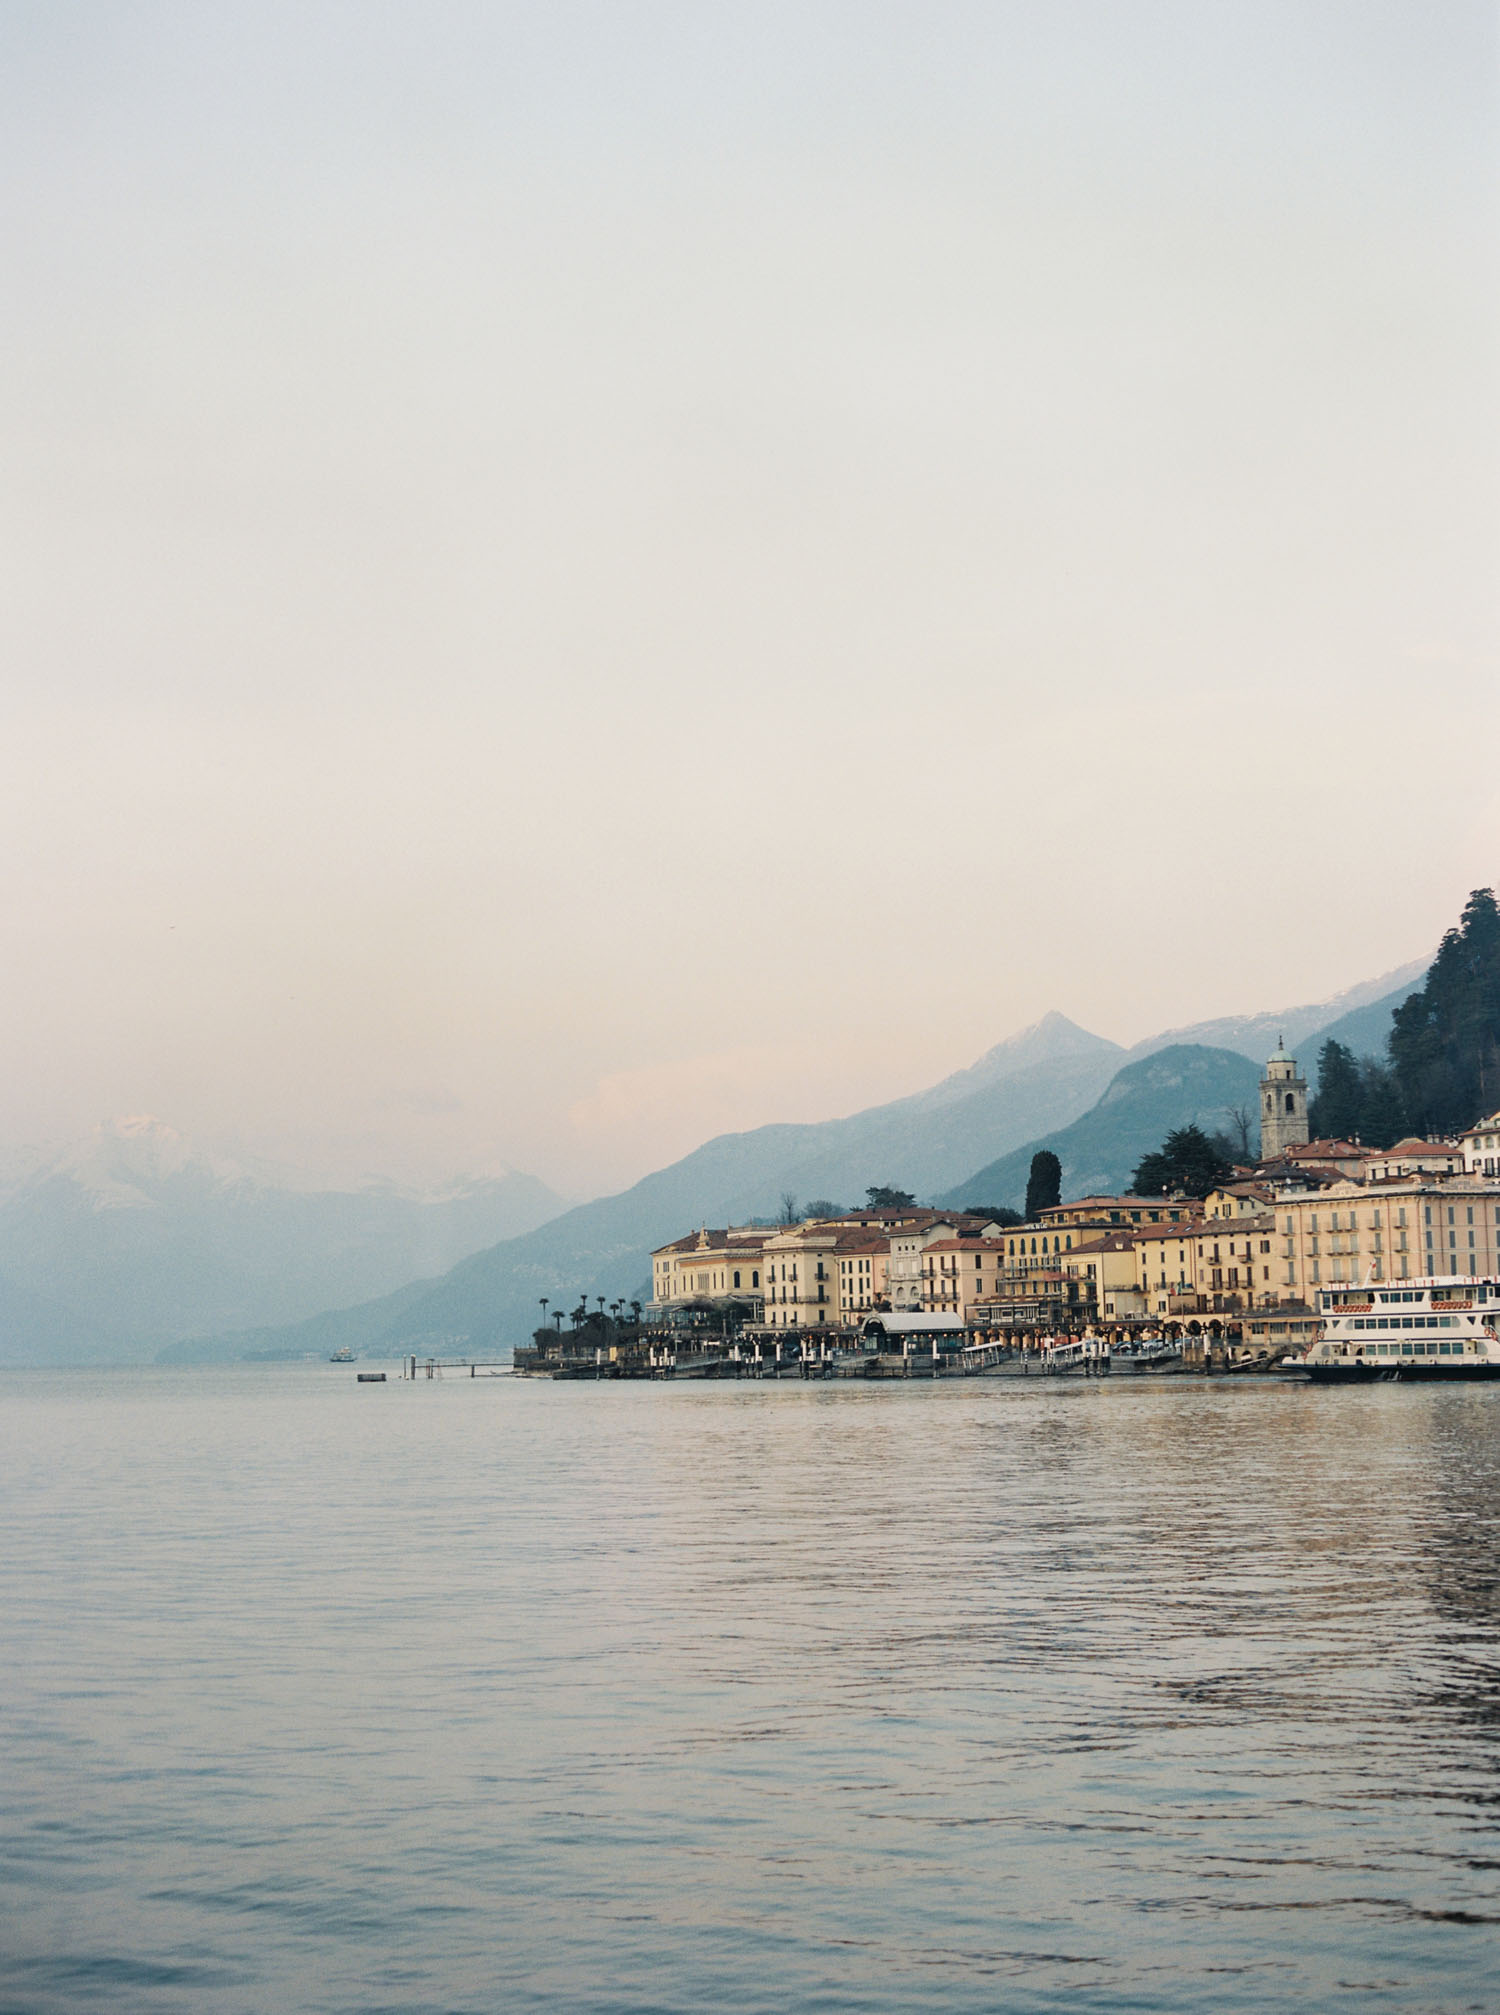 Lake Como scenery captured on film by destination wedding photographer Anna Peters